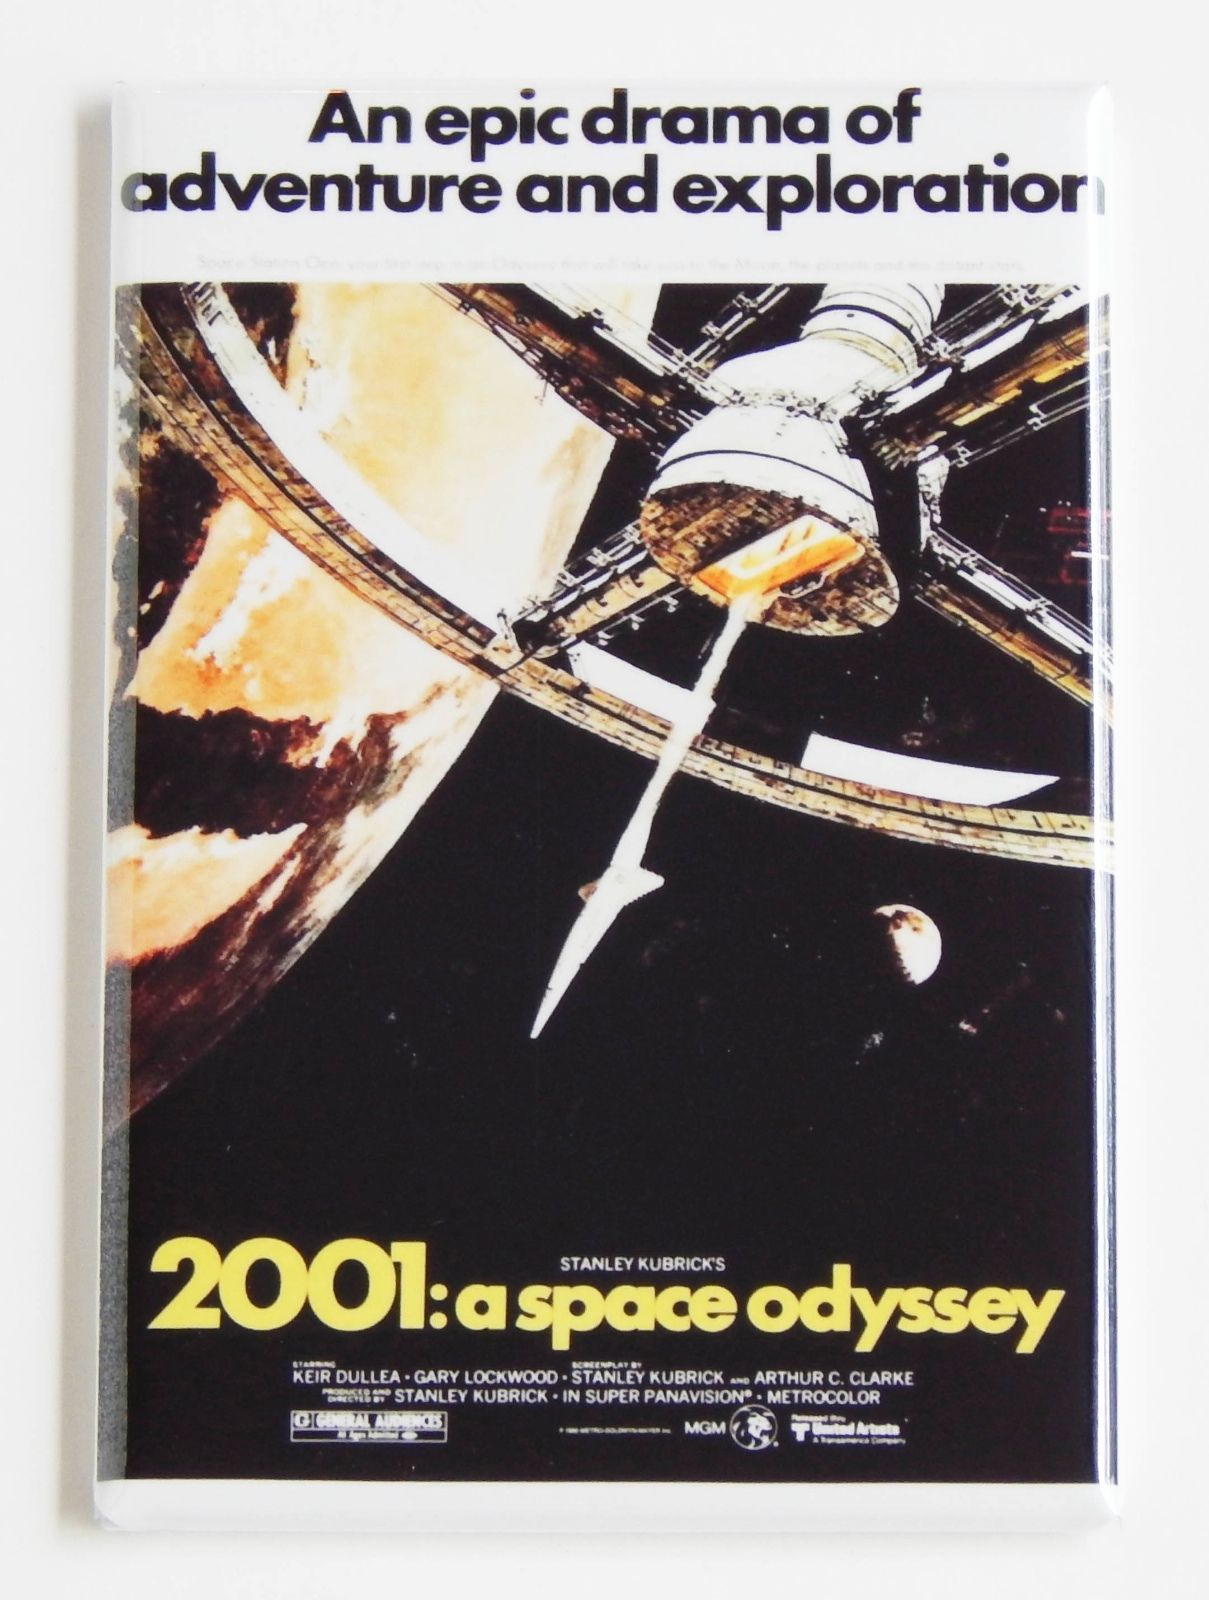 2001: A SPACE ODYSSEY MOVIE POSTER MAGNET - 2x3 INCHES STANLEY KUBRICK 2001